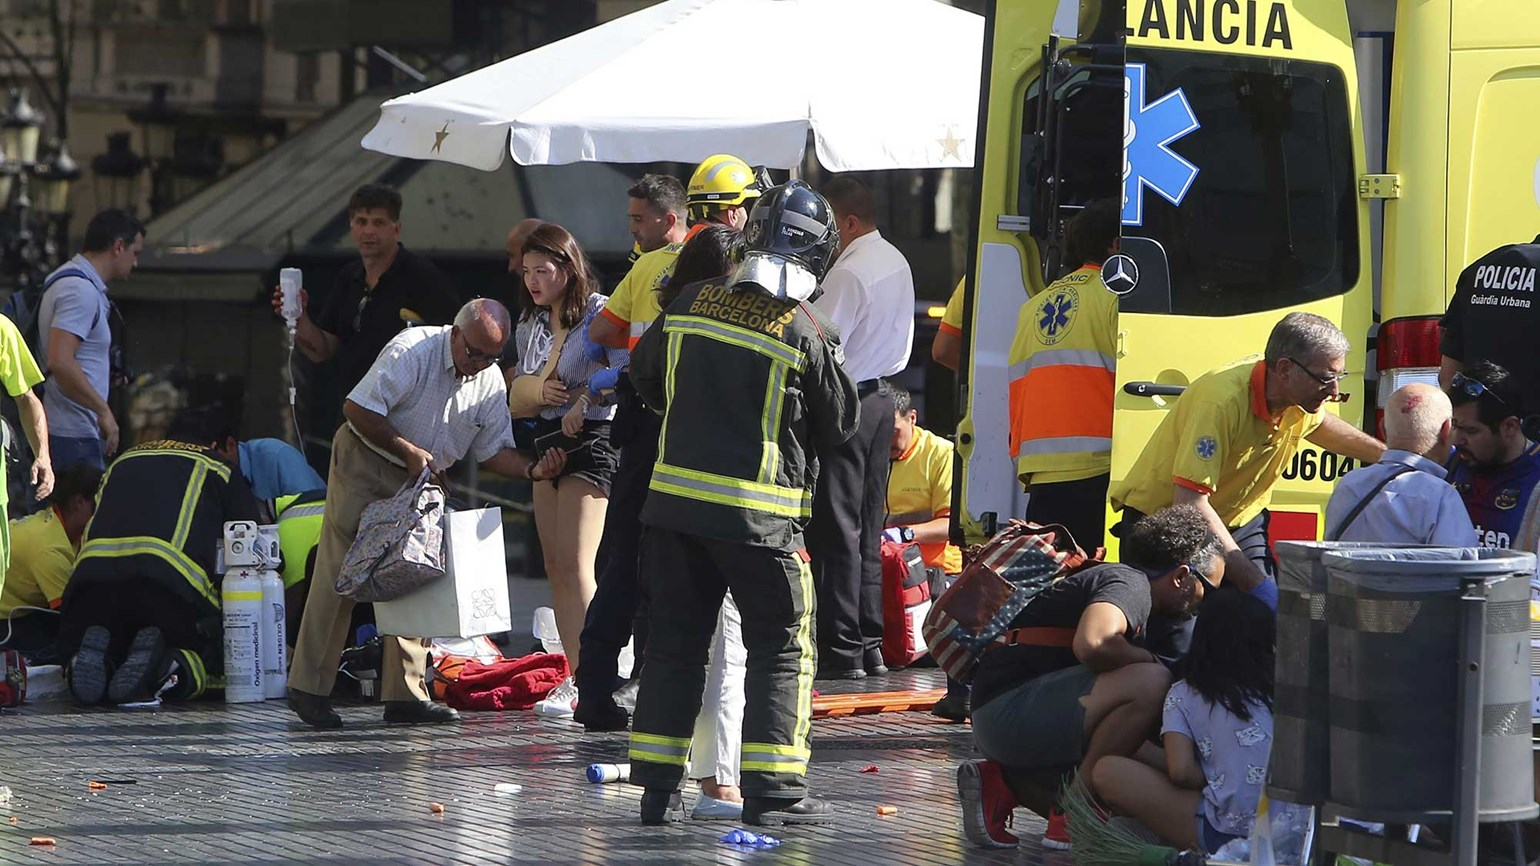 Van plows through pedestrians on Barcelona's Las Ramblas